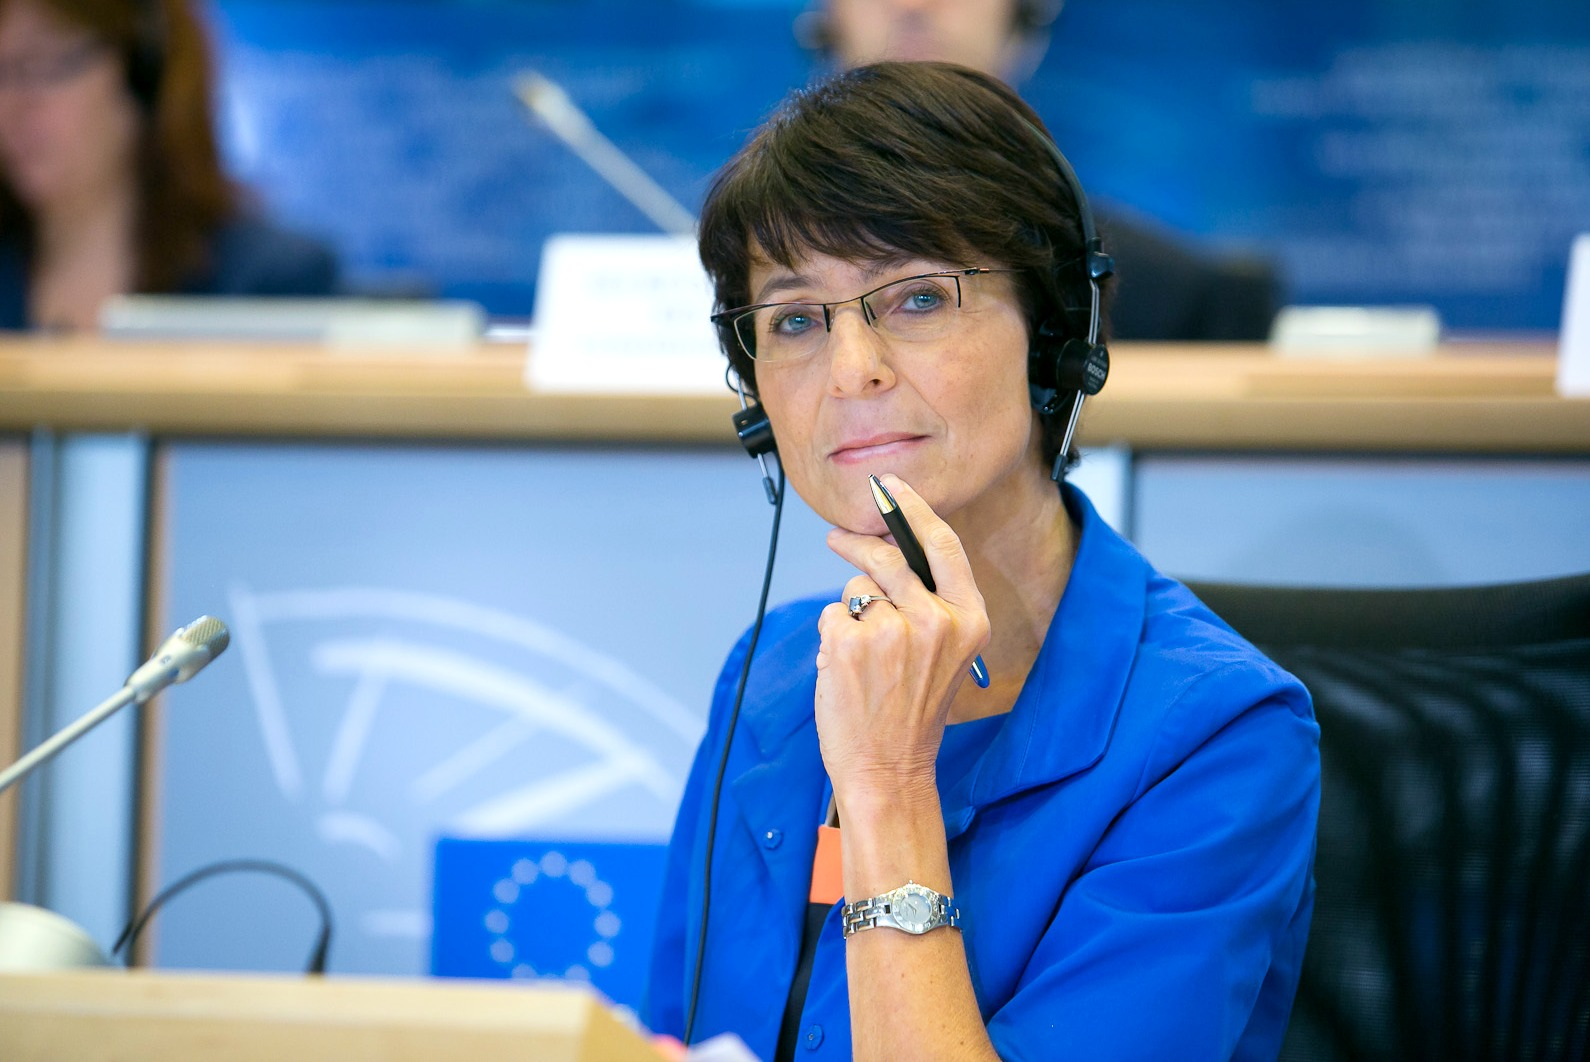 European Commissioner Thyssen in Croatia on her first visit to the country